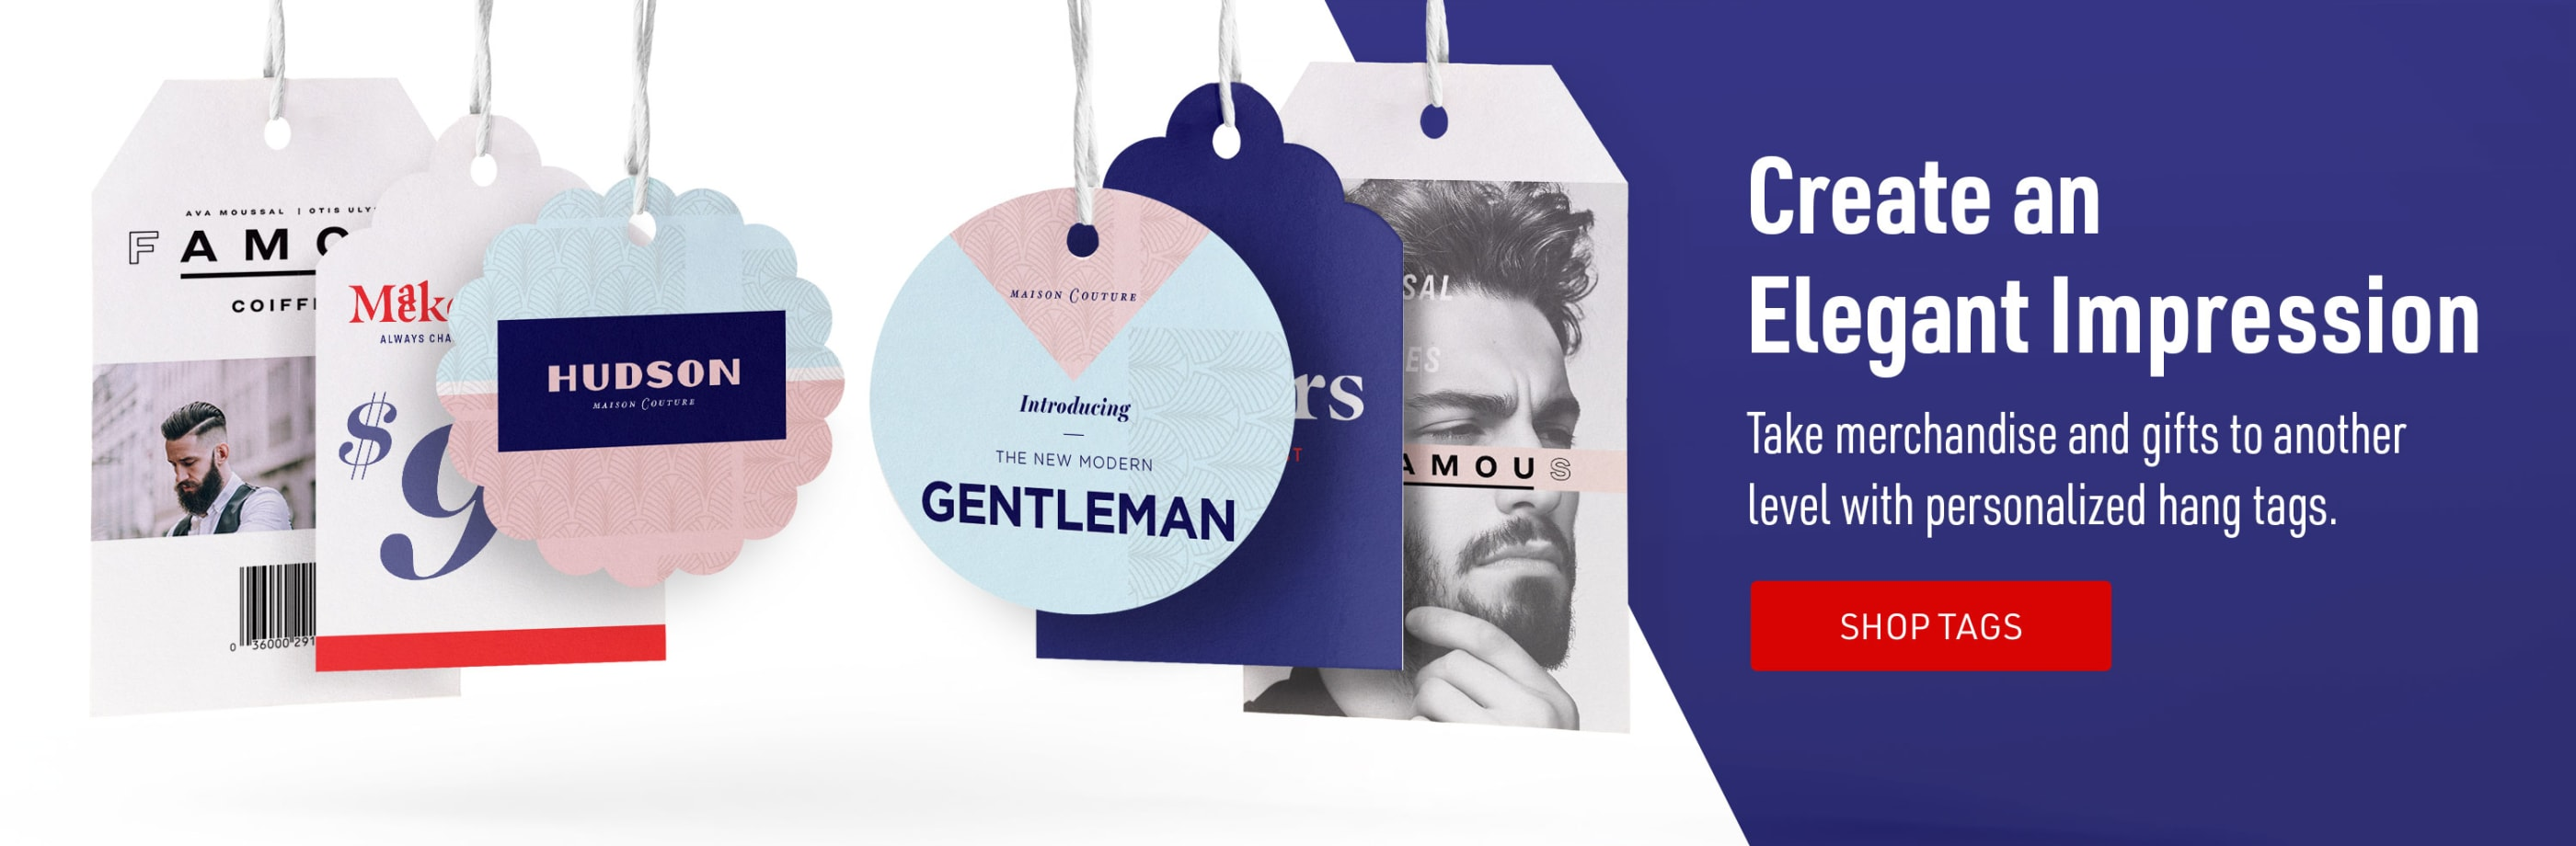 Create an Elegant Impression. Take merchandise & gifts to another level with premium hang tags